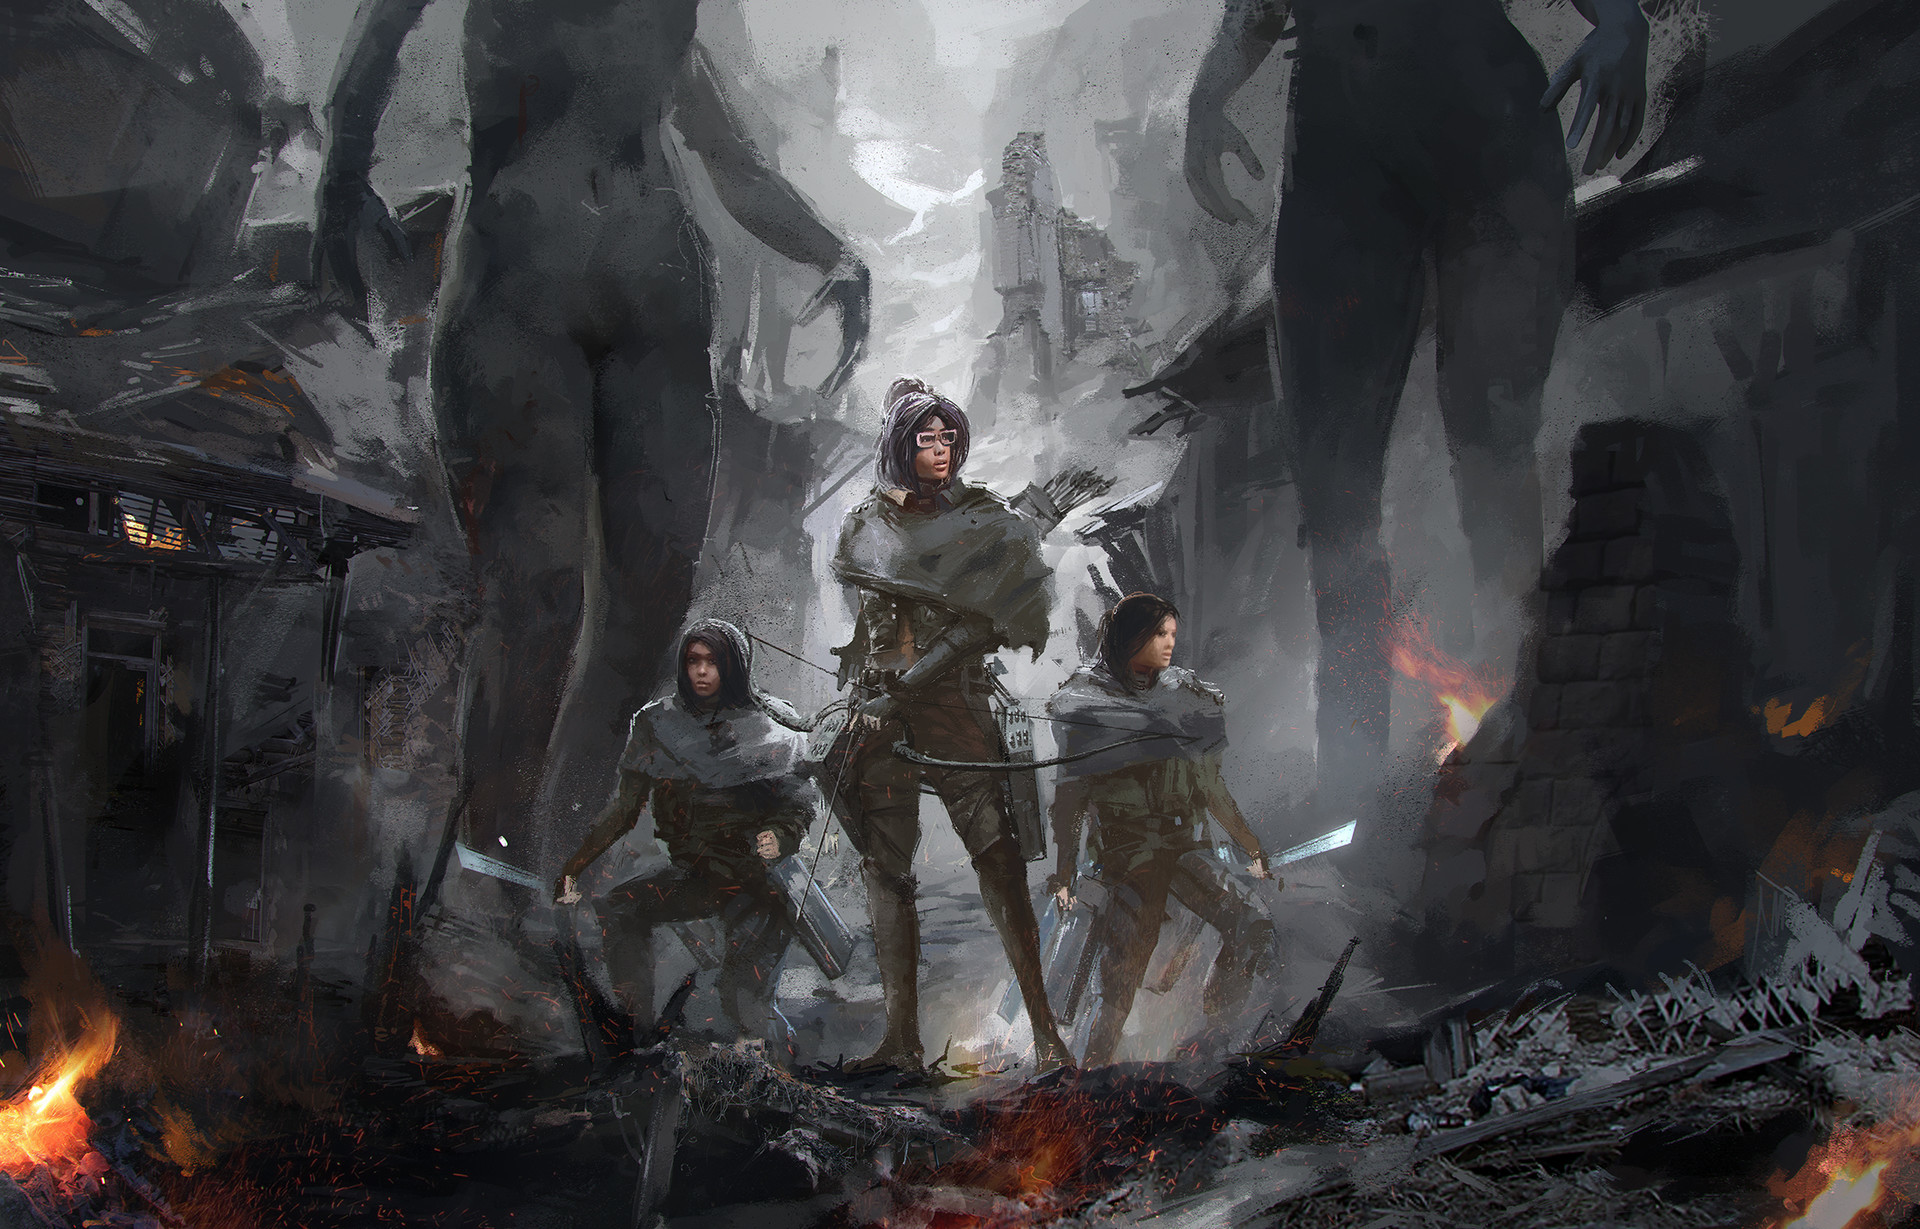 Sergey musin sergey musin attack on titans characterconcept 1 07